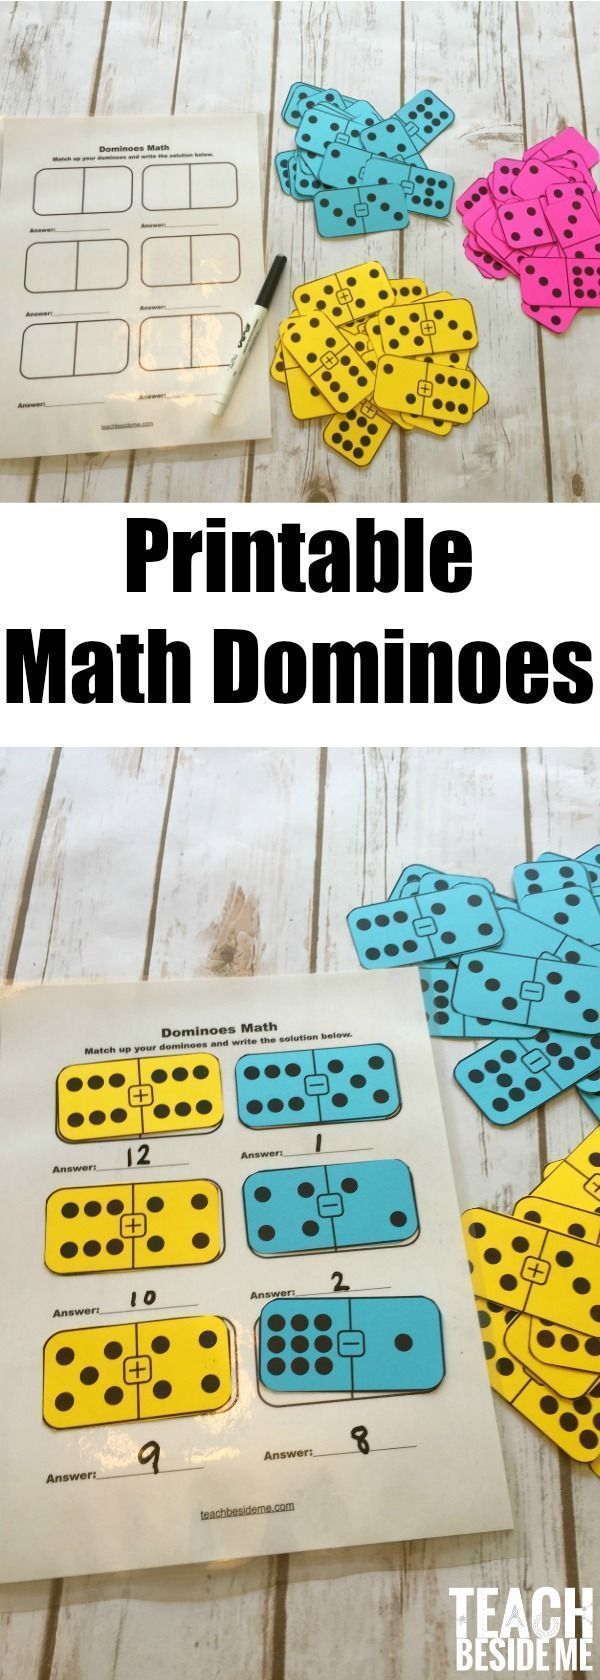 Printable Math Dominoes for addition, subtraction or multiplication. Fun math game or for math centers. Includes three different domino sets. via @karyntripp #mathgames #learnmathforadults